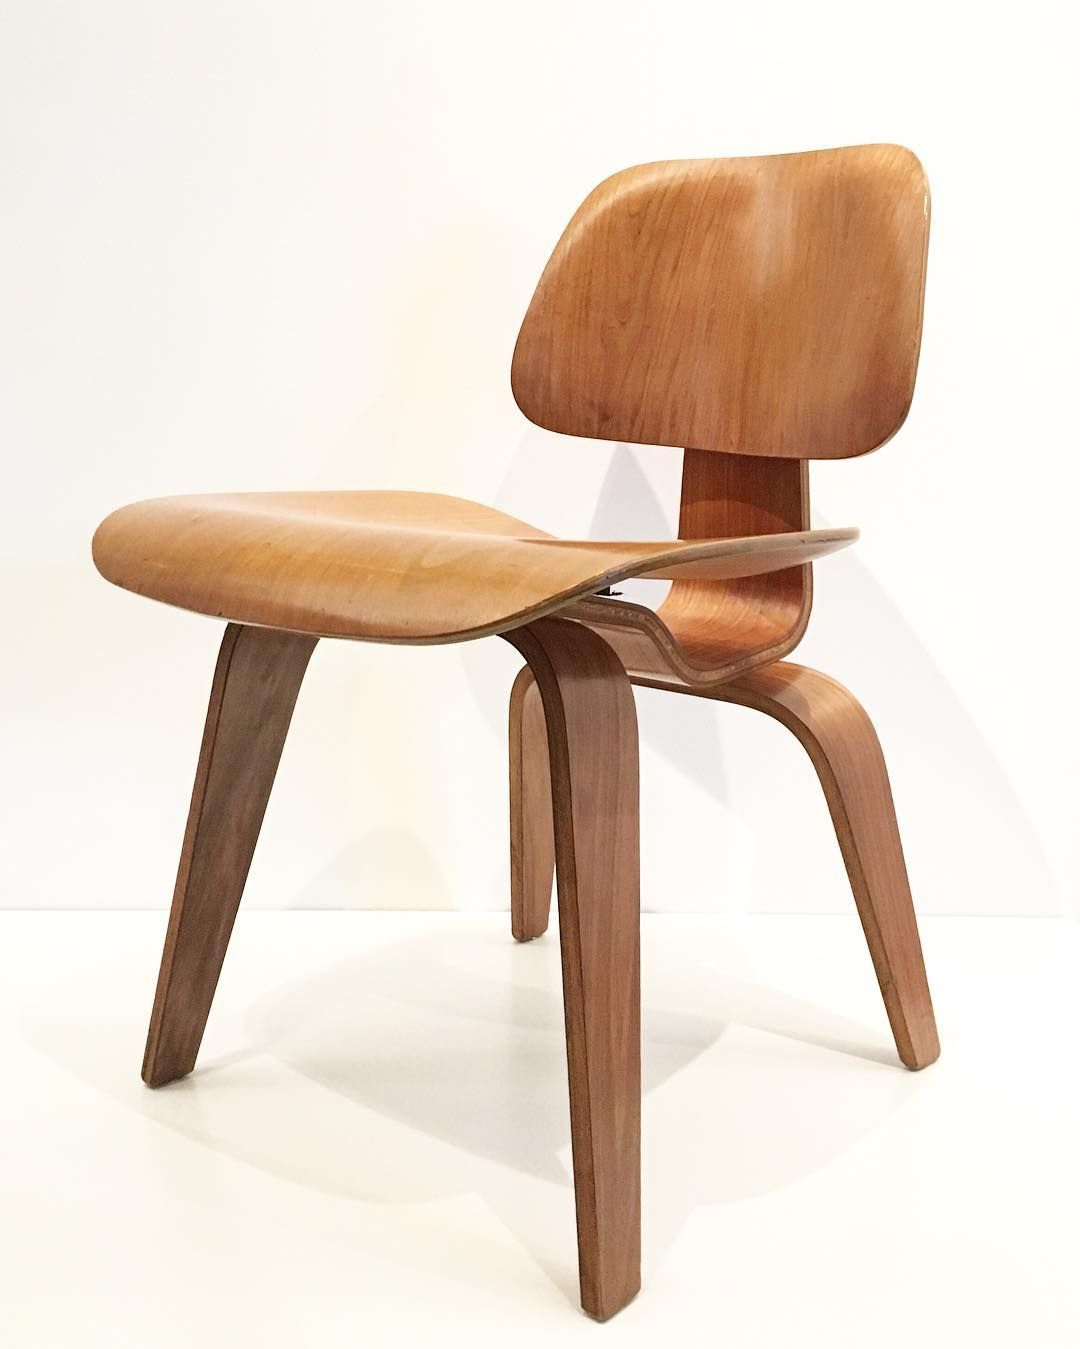 Loving this original Eames chair on display at the Nelson Atkins ...